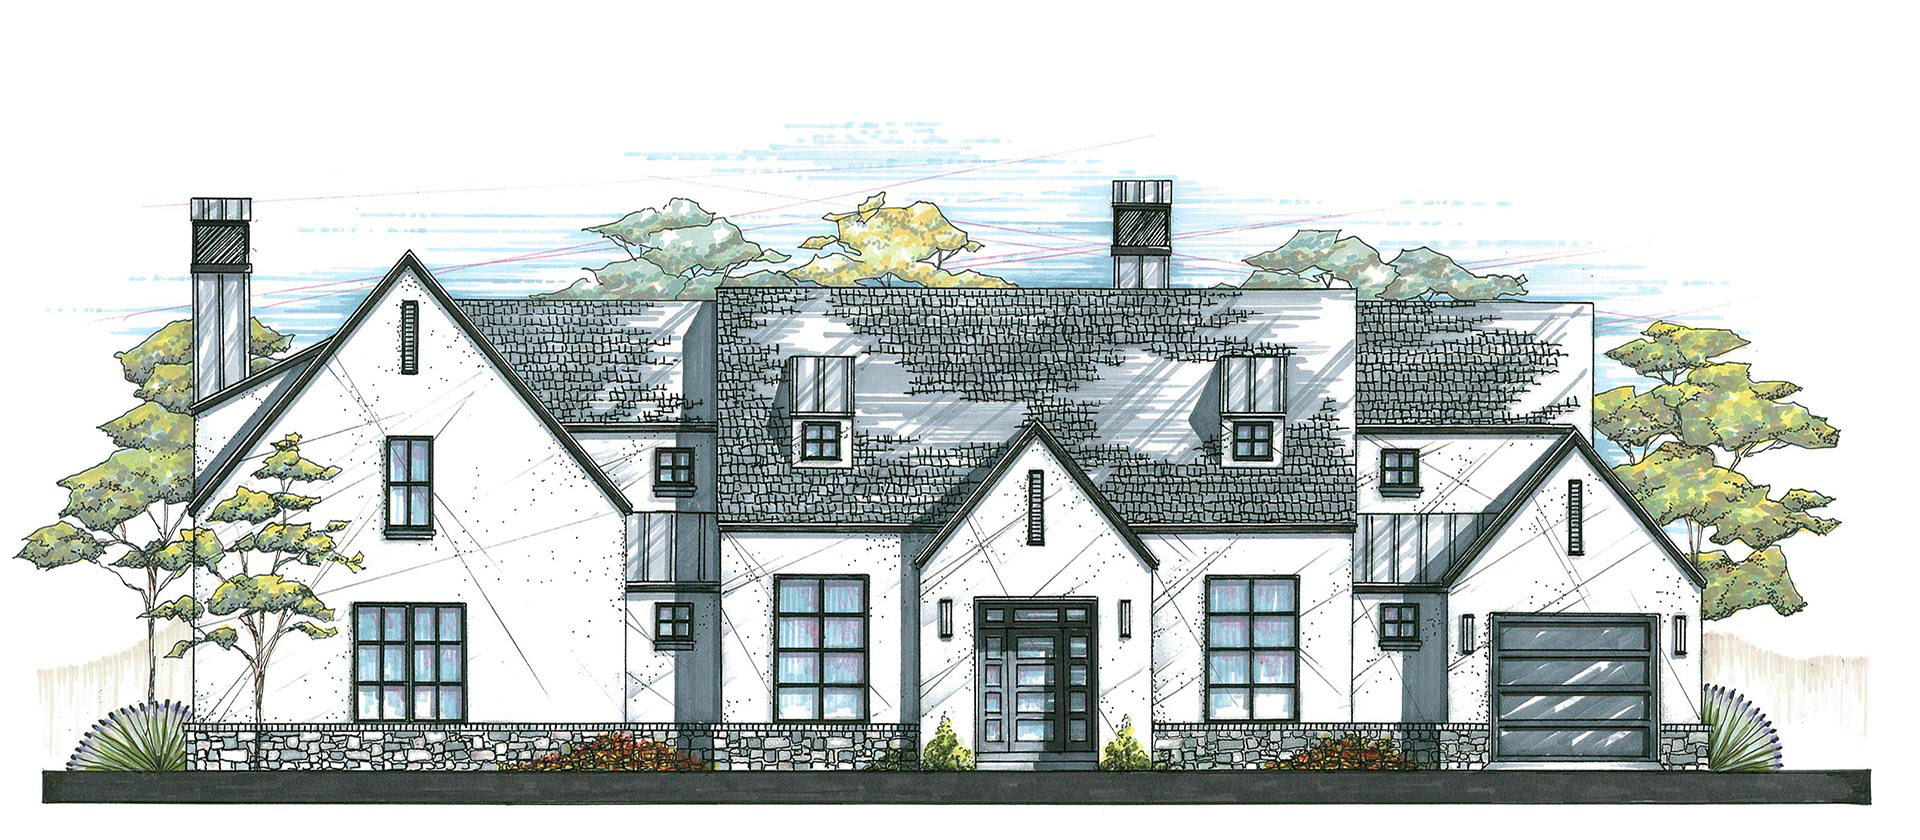 House Sketches Gallery Bainbridge Design Group